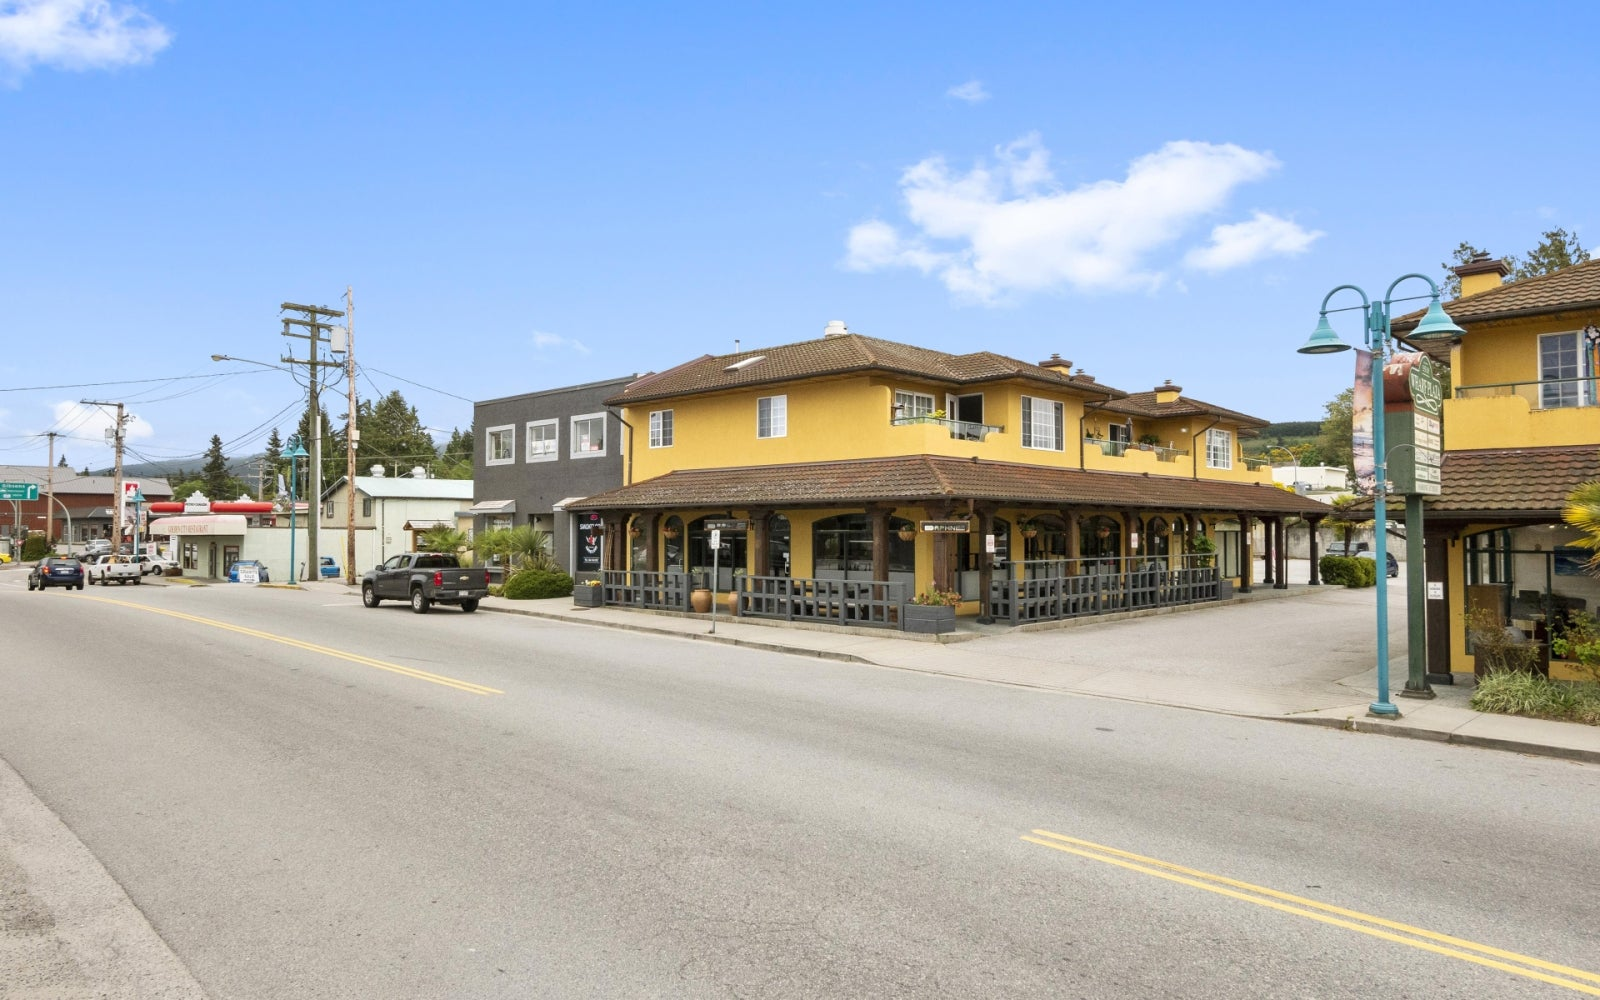 DAPHNE'S MEDITERRANEAN GRILL    5530 Wharf Ave, Sechelt BC V0N 3A0 - Sechelt District COMM for sale(C8018948) #1